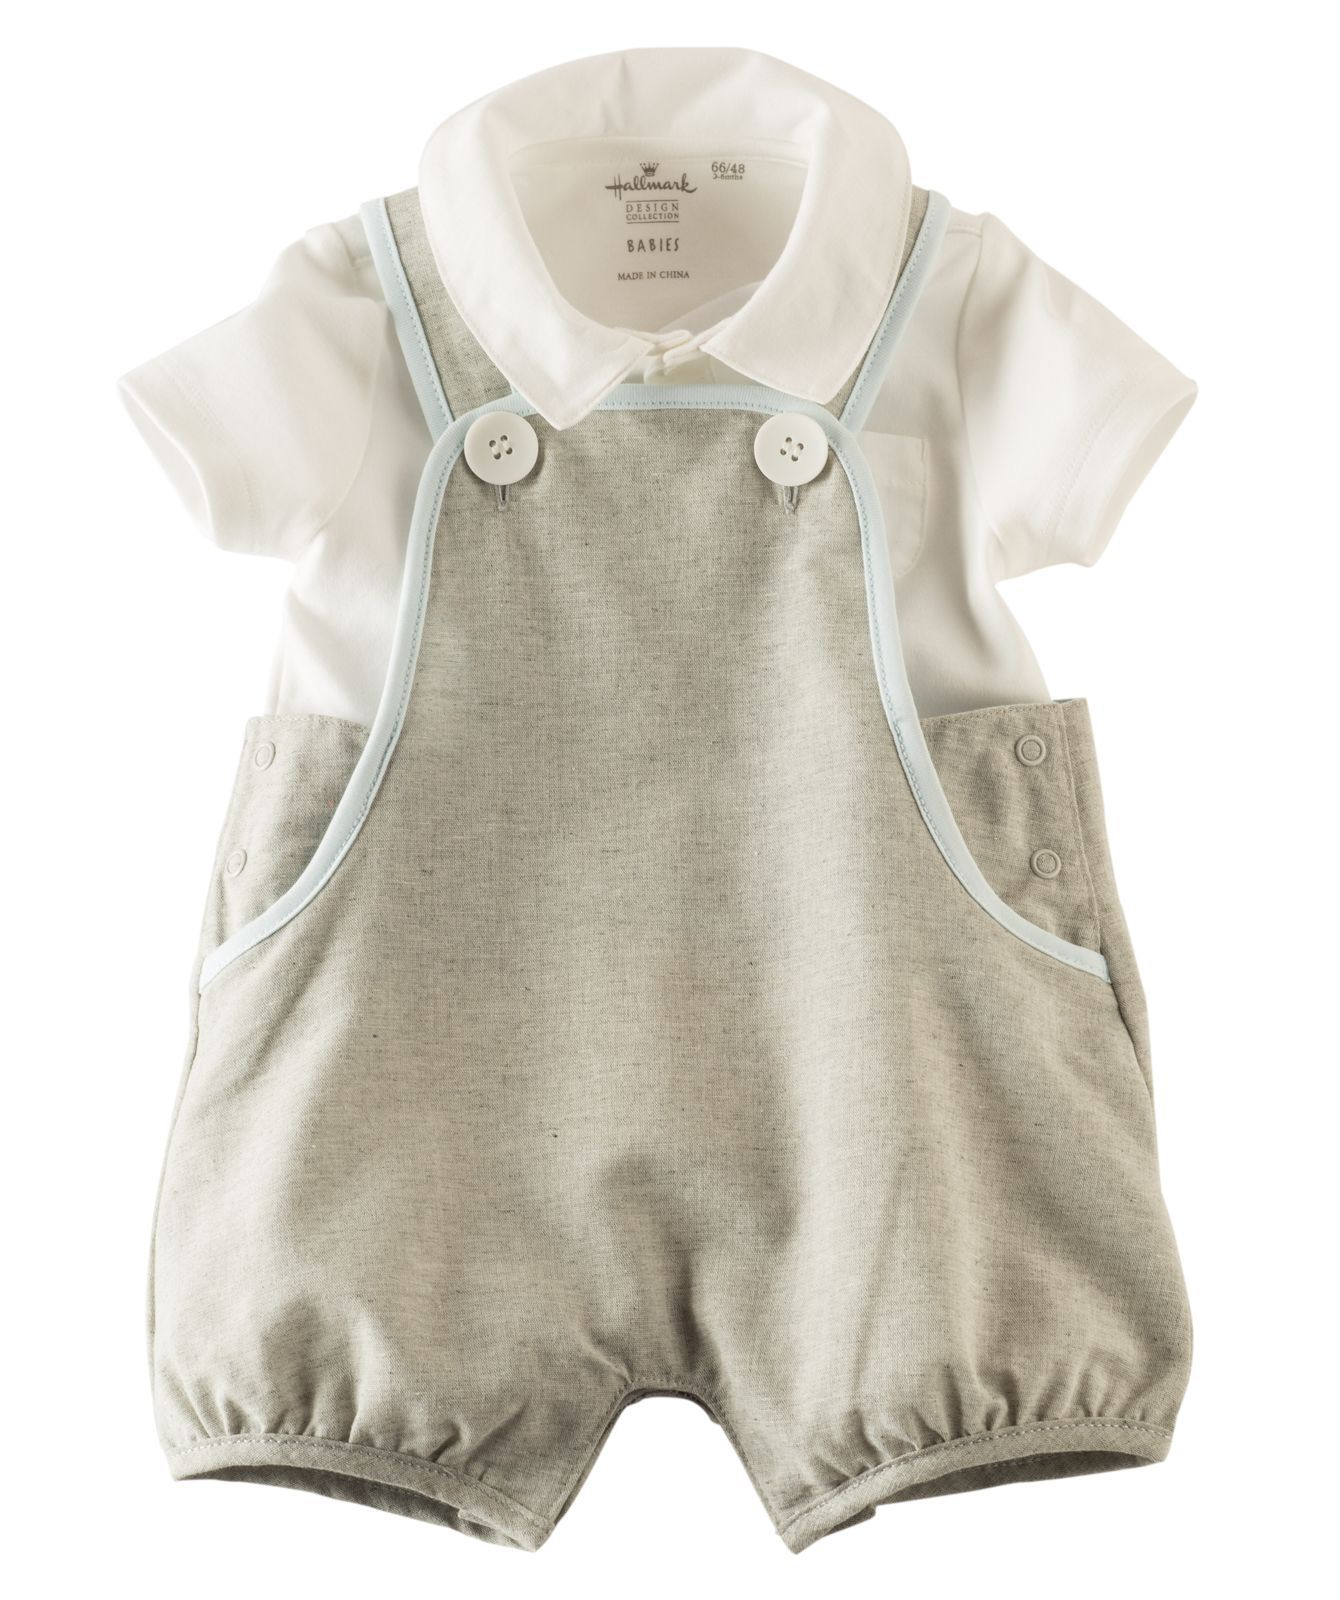 Little Lad Overall And Top Set Sewing Ideas Baby Boy